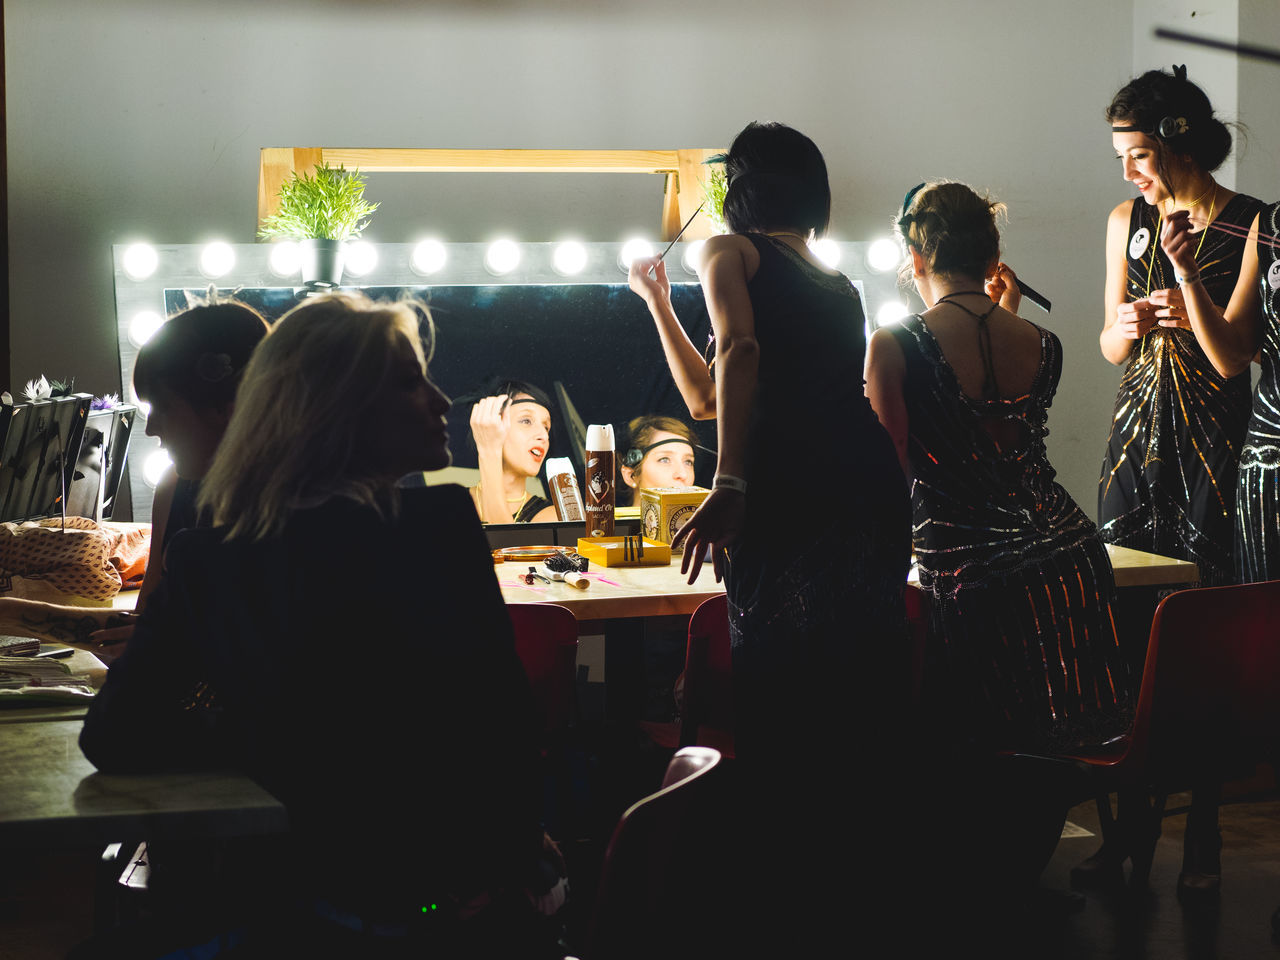 Make up at the party Bar - Drink Establishment Bar Counter Dance Females Friendship Group Of People Indoors  Makeup Meeting Night Nightlife Occupation People Real People Small Business Swing Vintage Women Young Adult Women Around The World